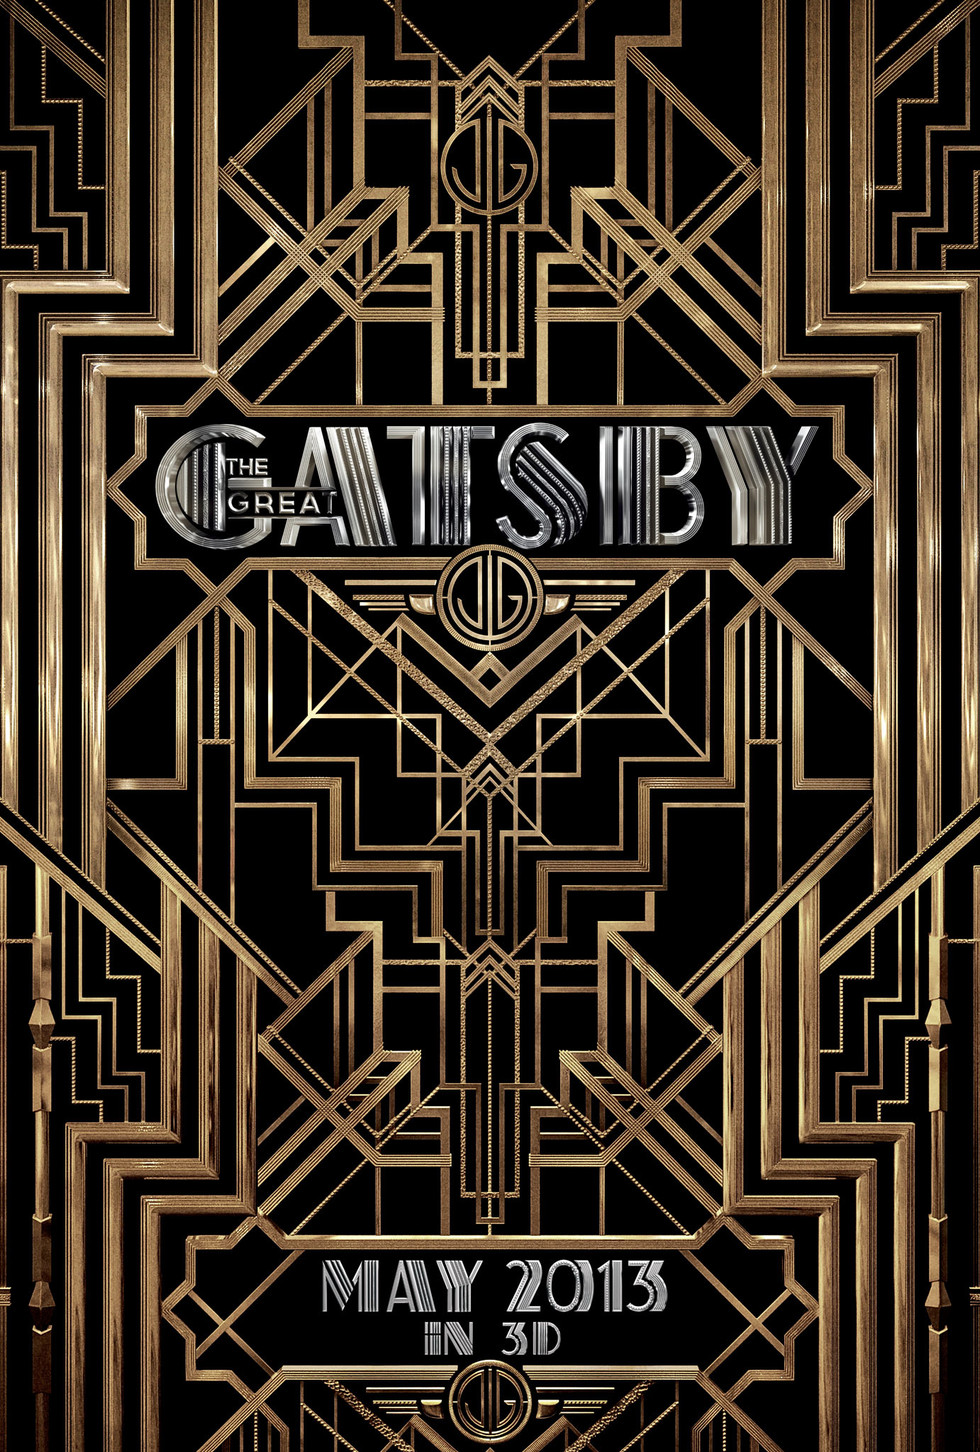 The Great Gatsby - Movie Poster #2 (Large)